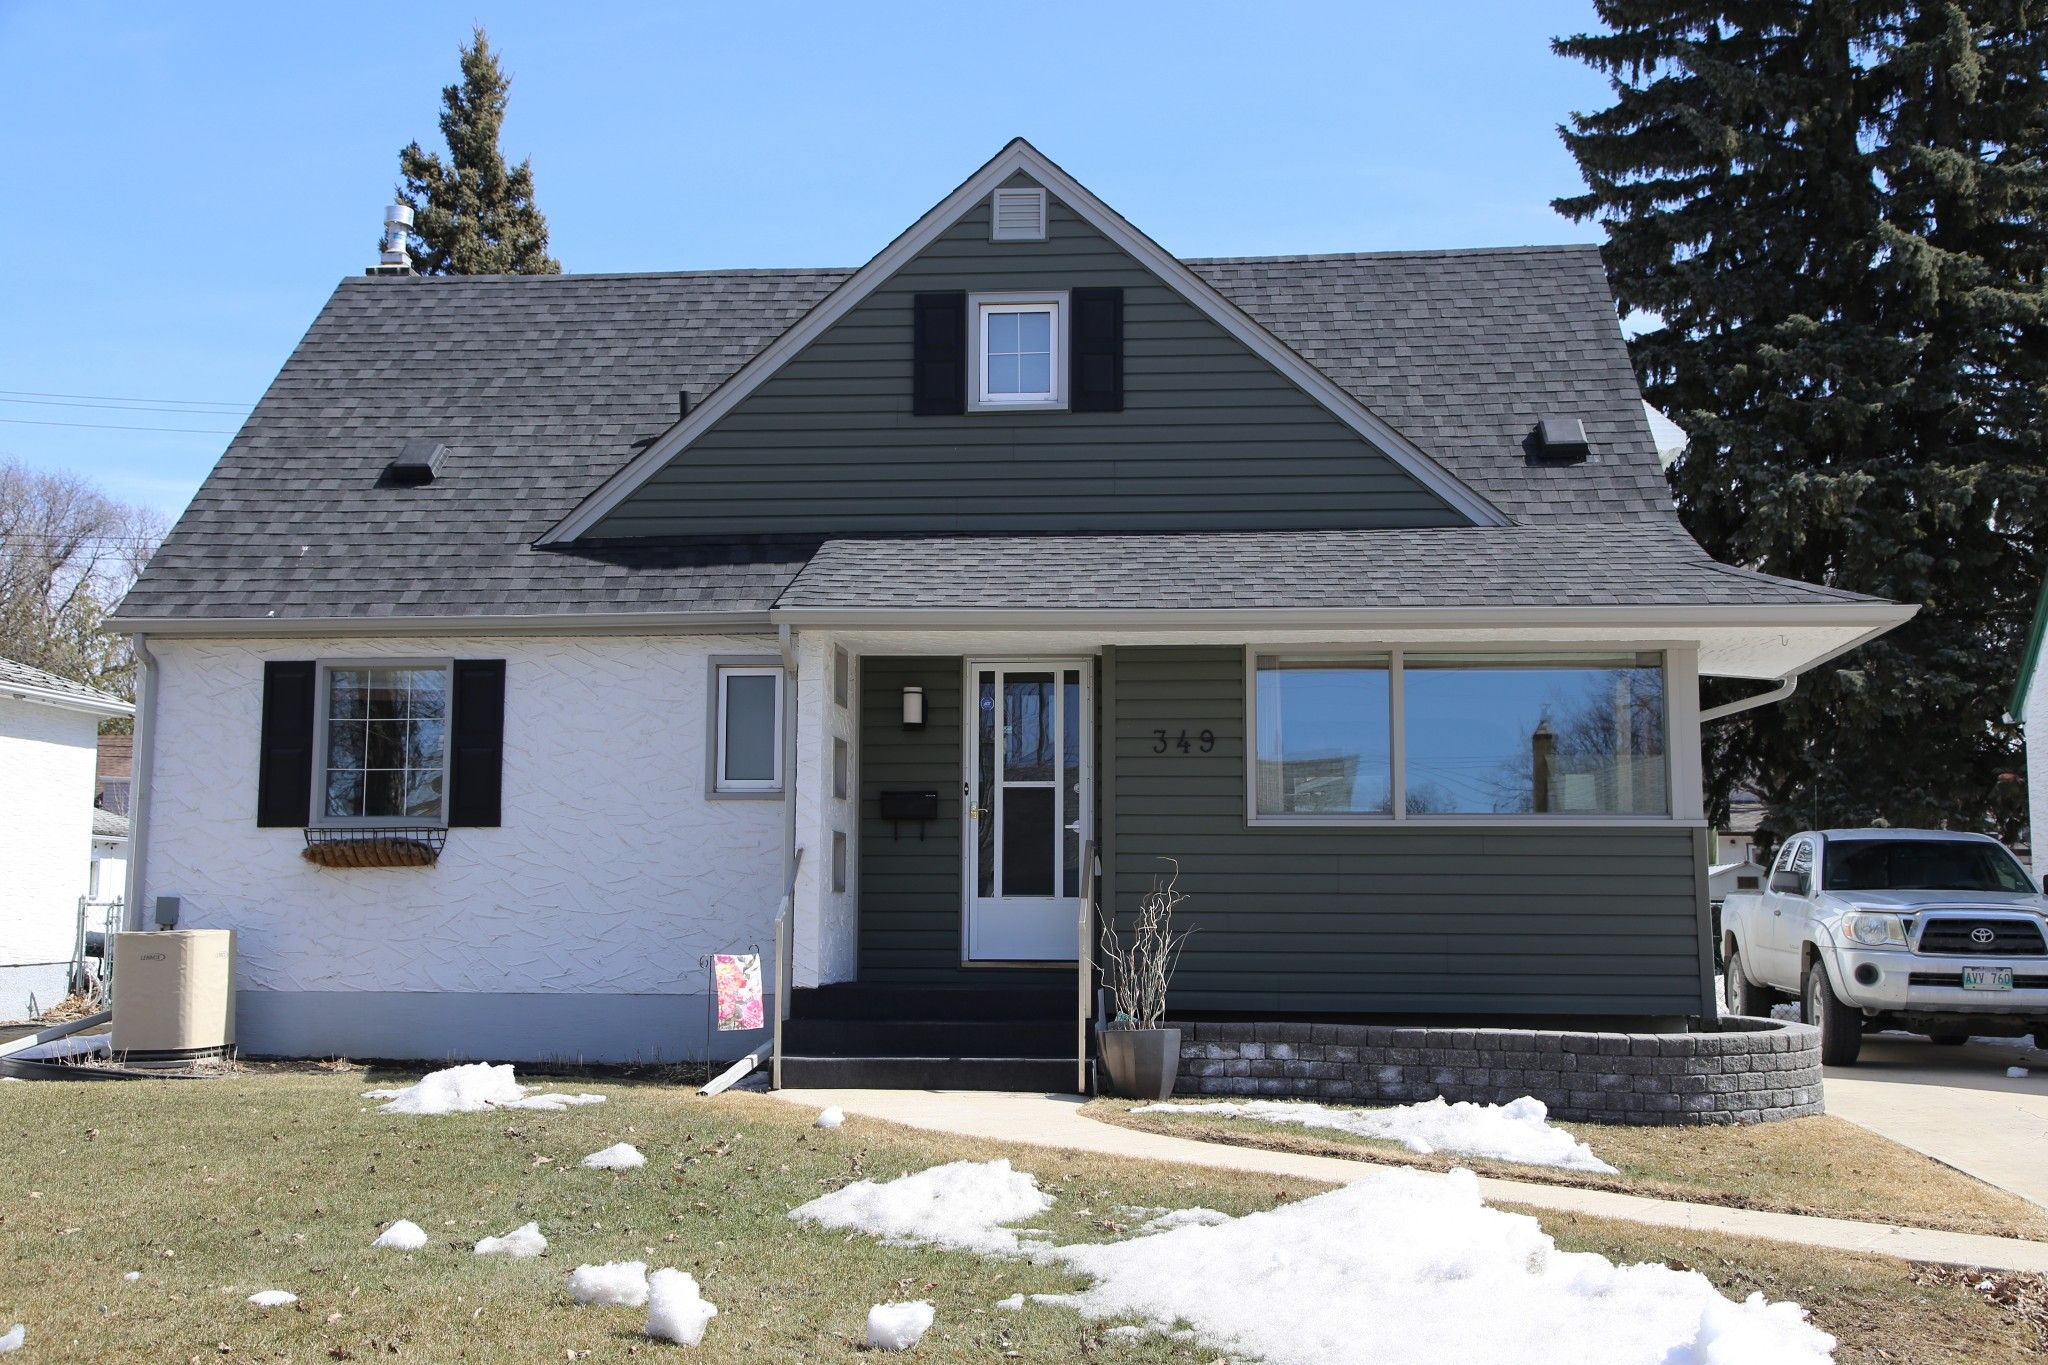 Photo 35: Photos: 349 Guildford Street in Winnipeg: St James Single Family Detached for sale (5E)  : MLS®# 1807654